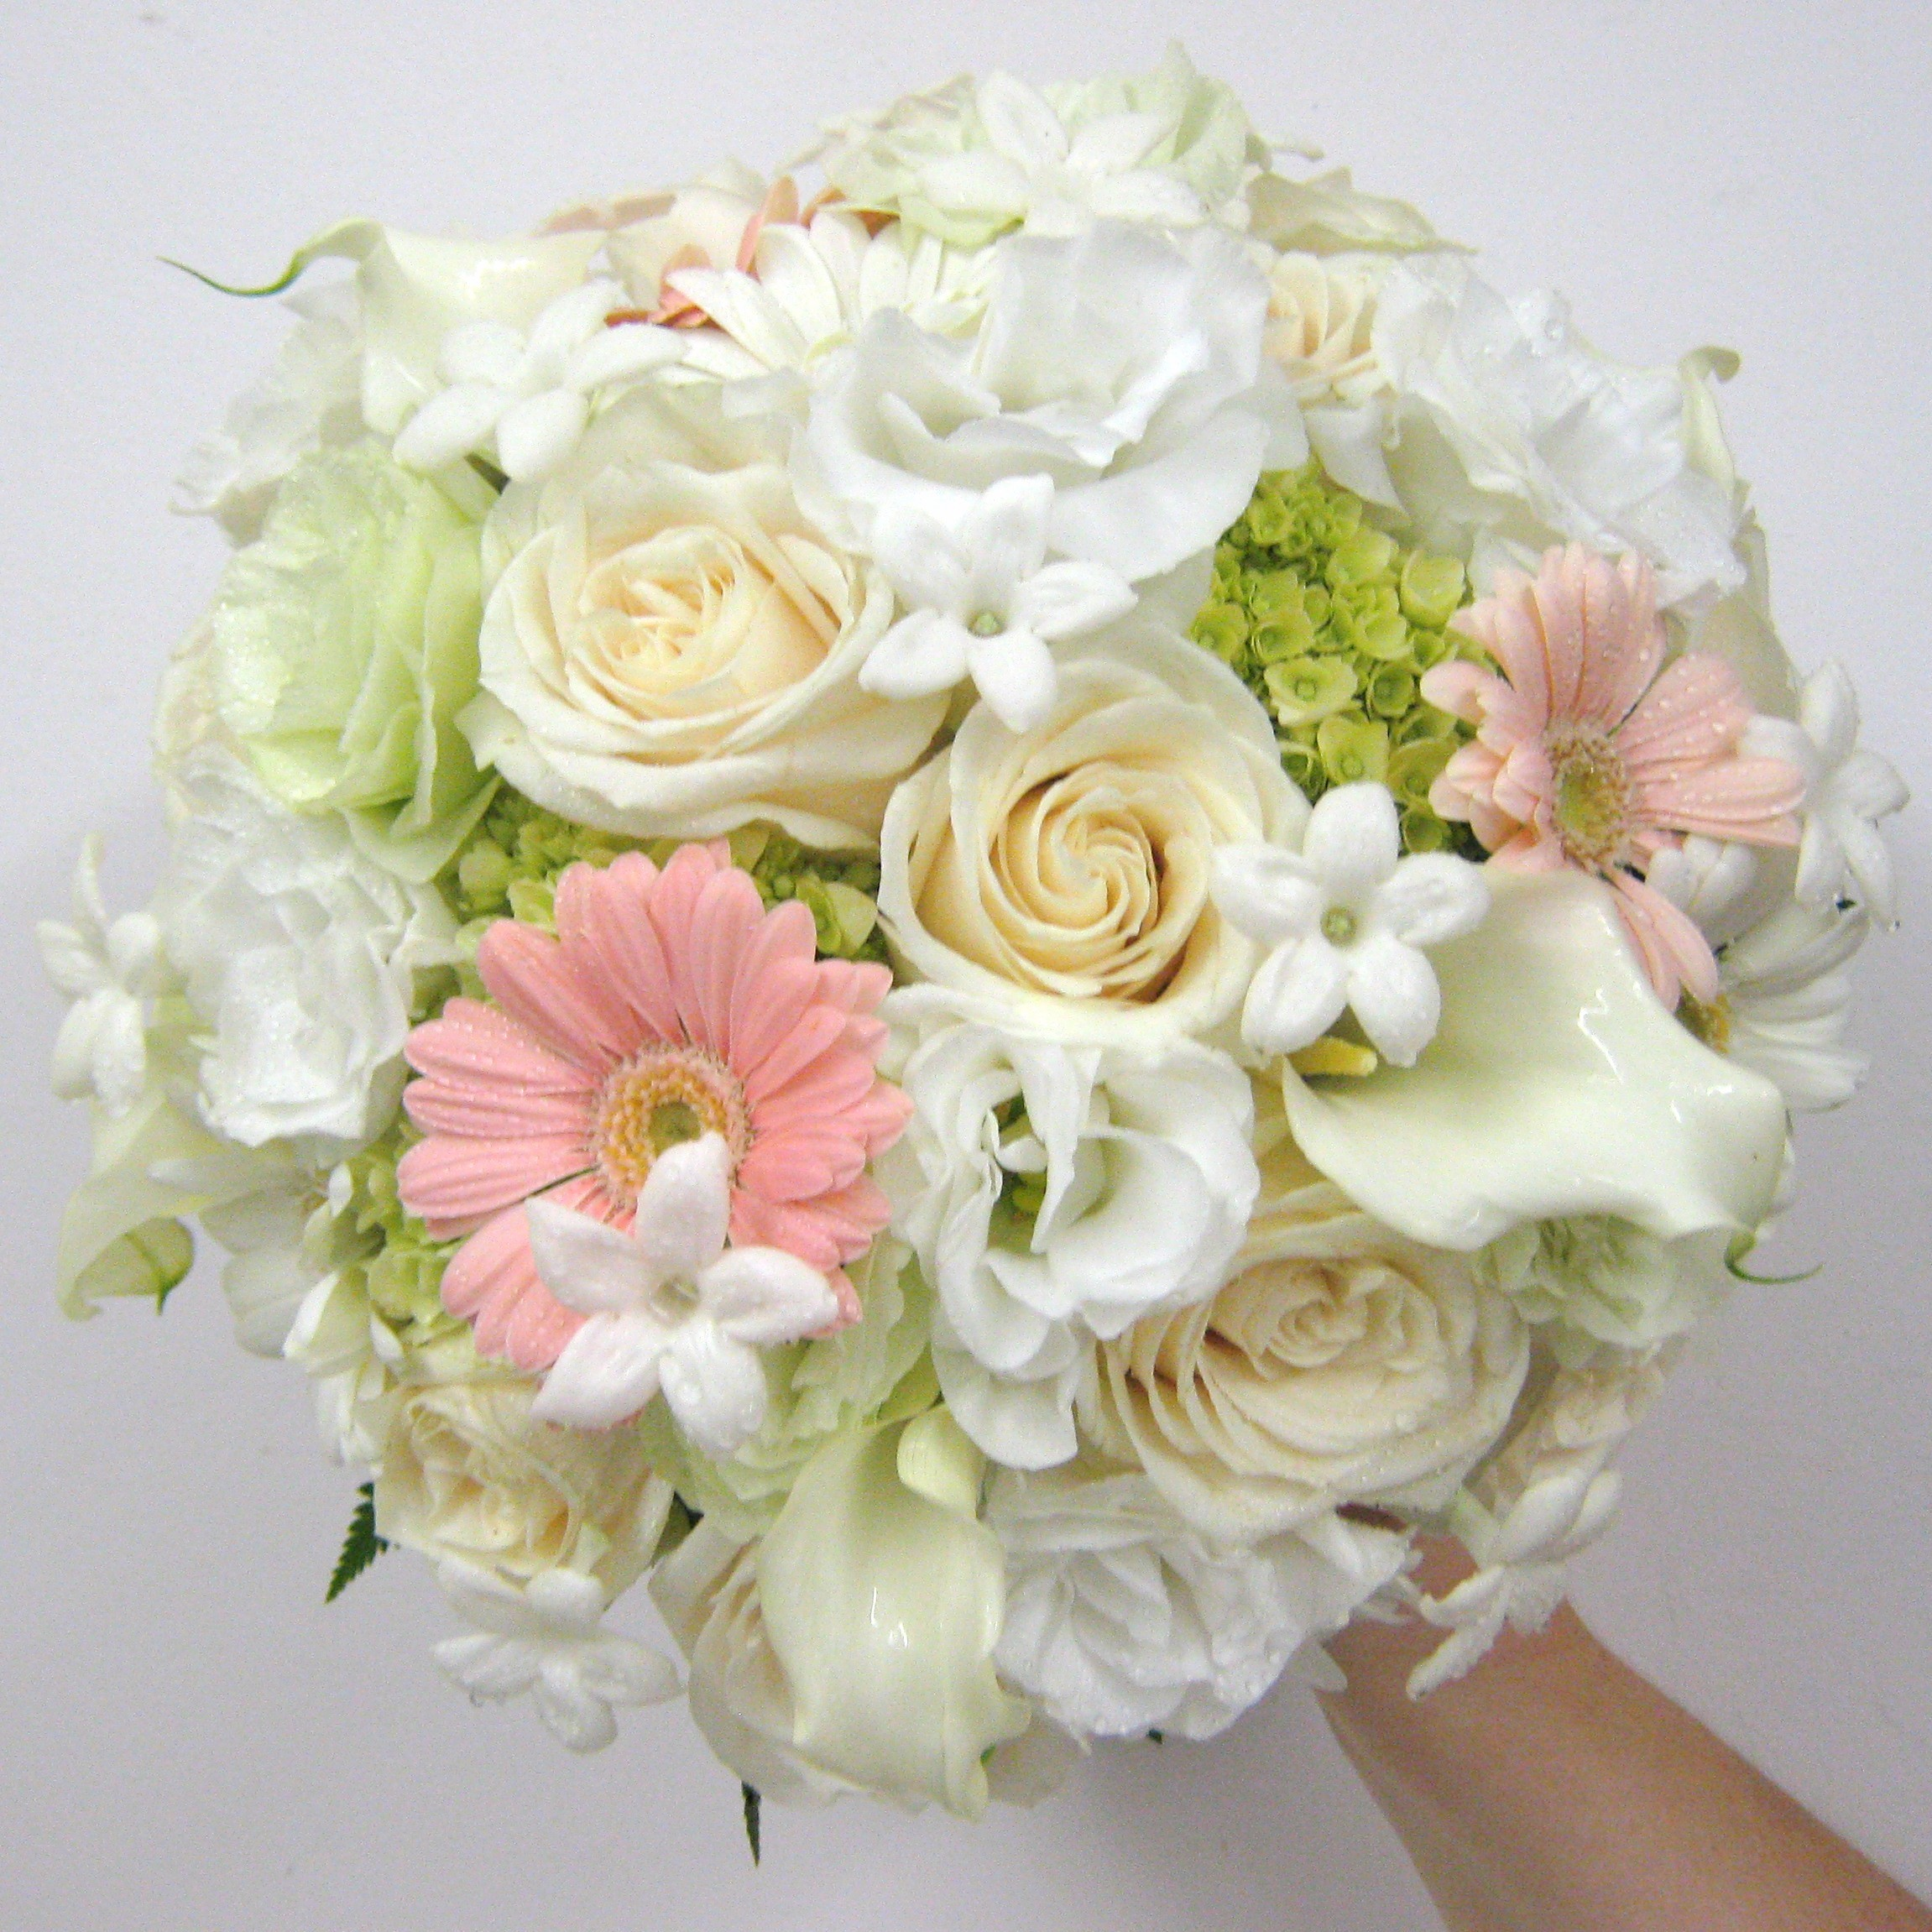 Peach wedding flowers buffalo wedding event flowers by lipinoga florist - Flowers good luck bridal bouquet ...